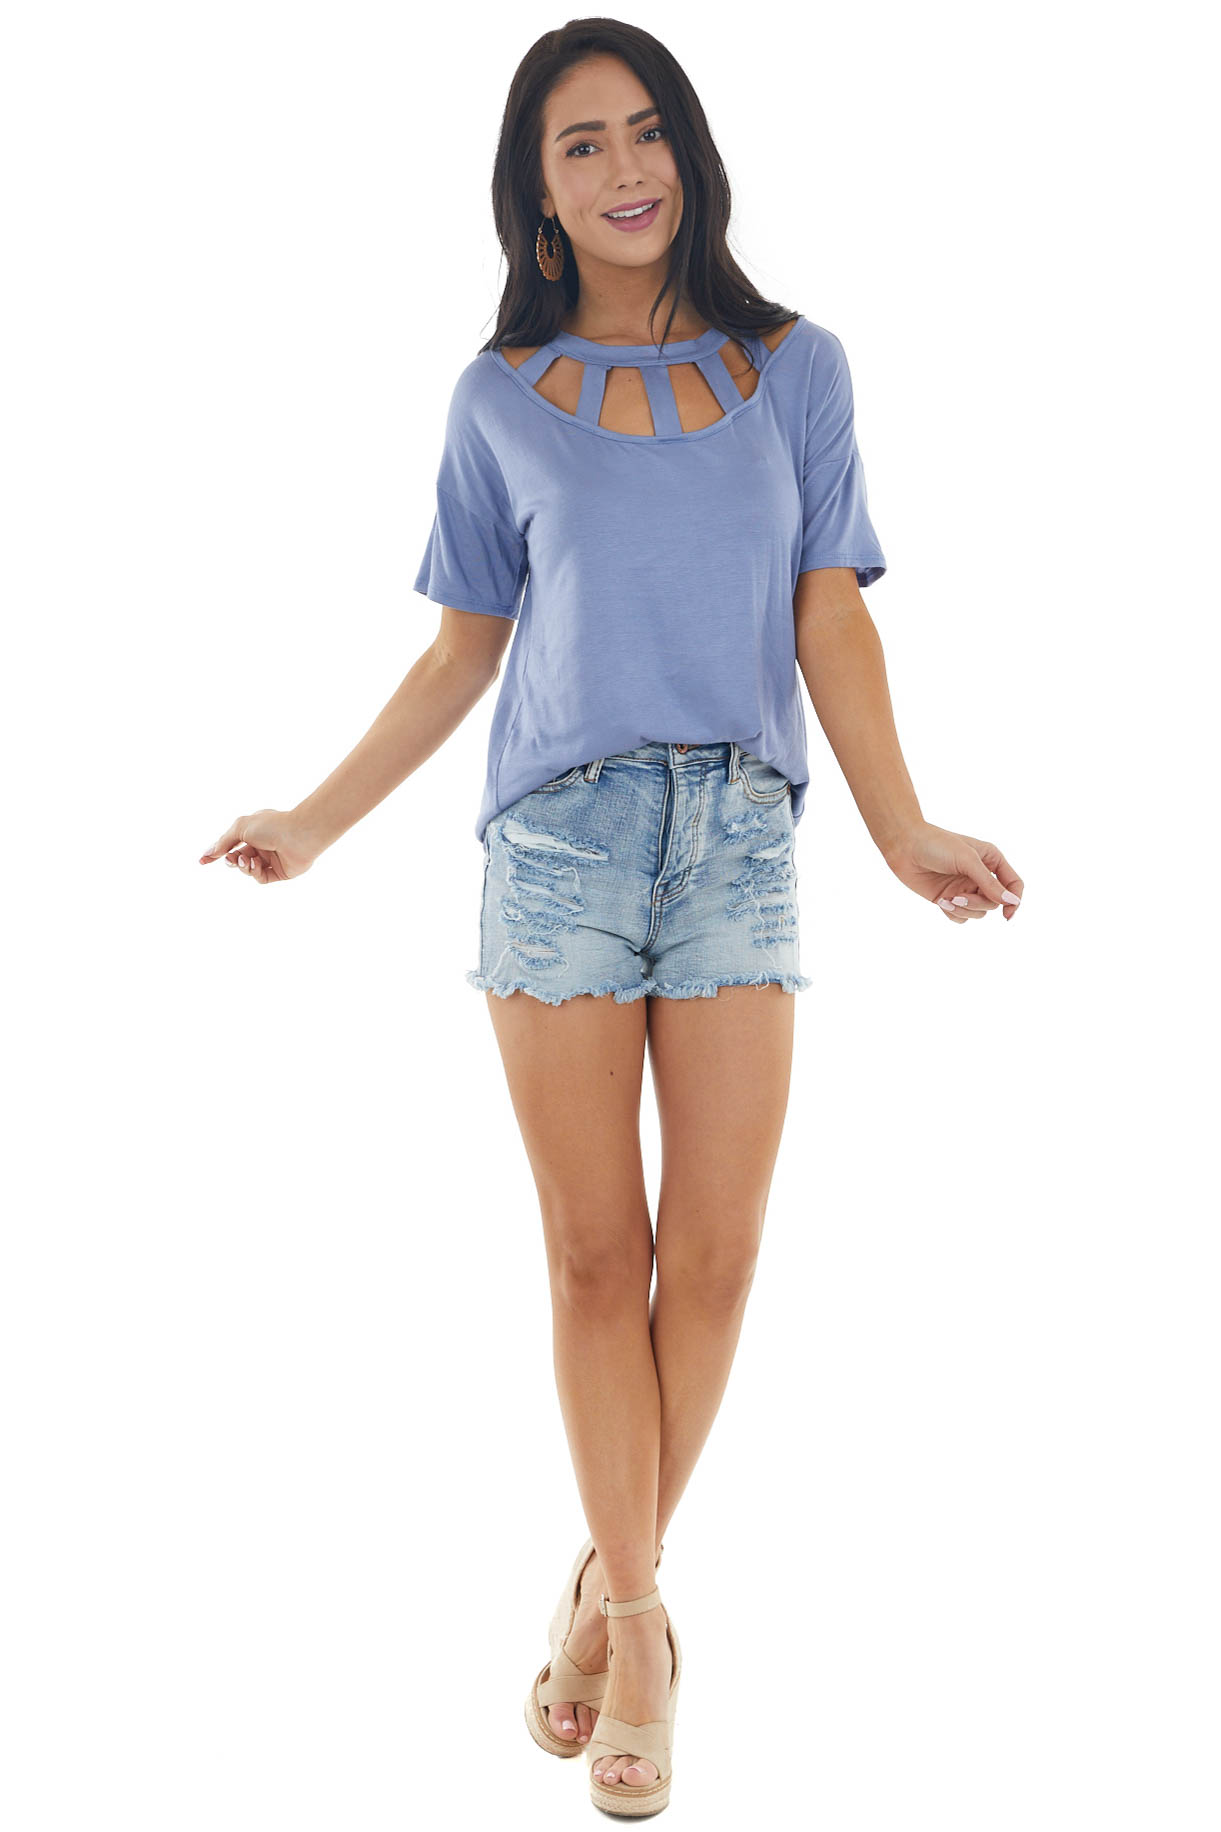 Dusty Blue Short Sleeve Knit Top with Caged Neckline